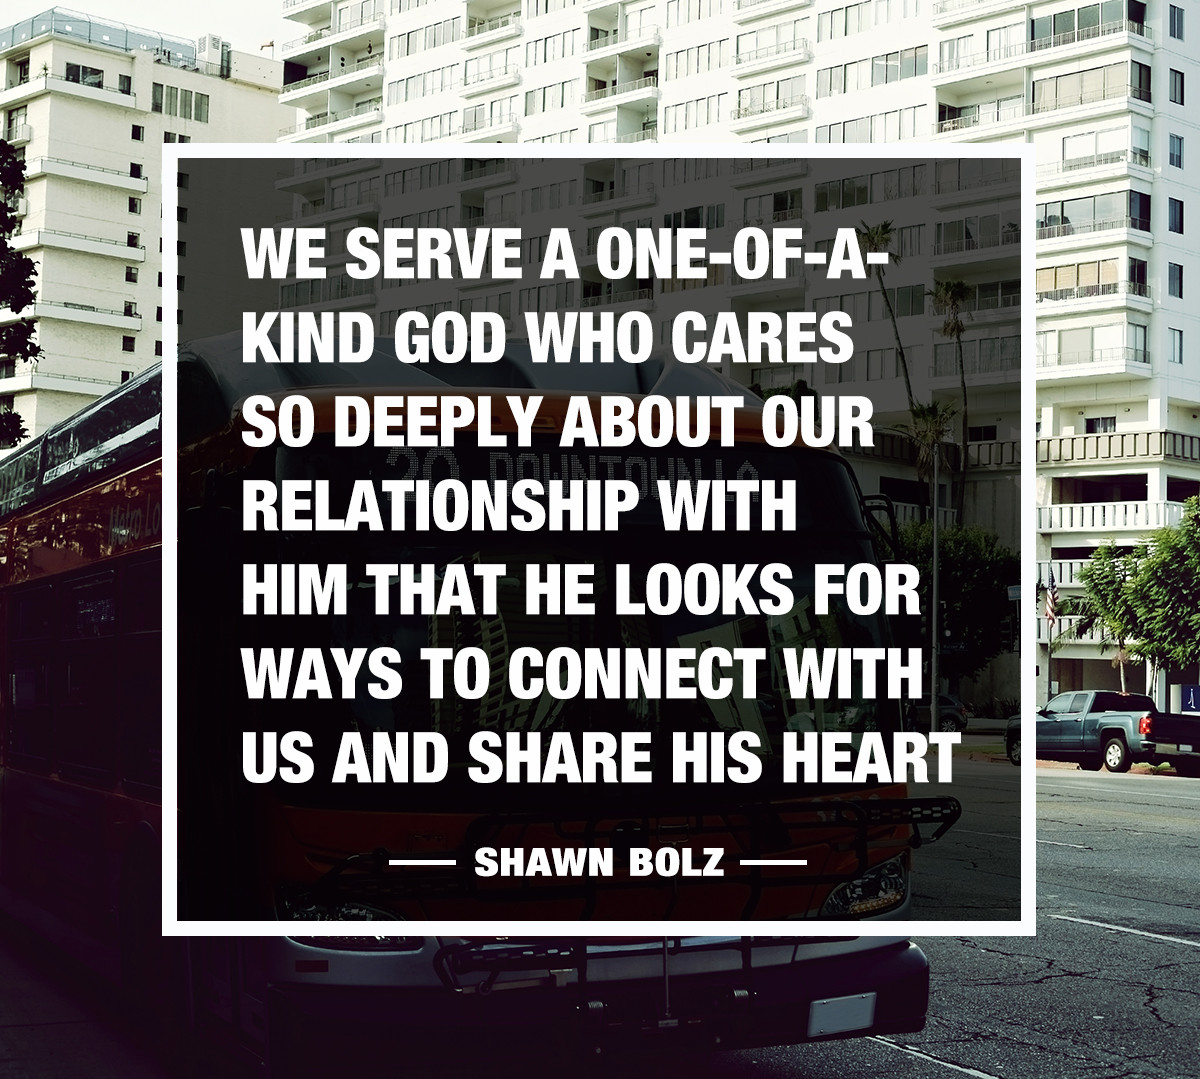 He cares so deeply about our relationship with him that He looks for ways to connect with us!